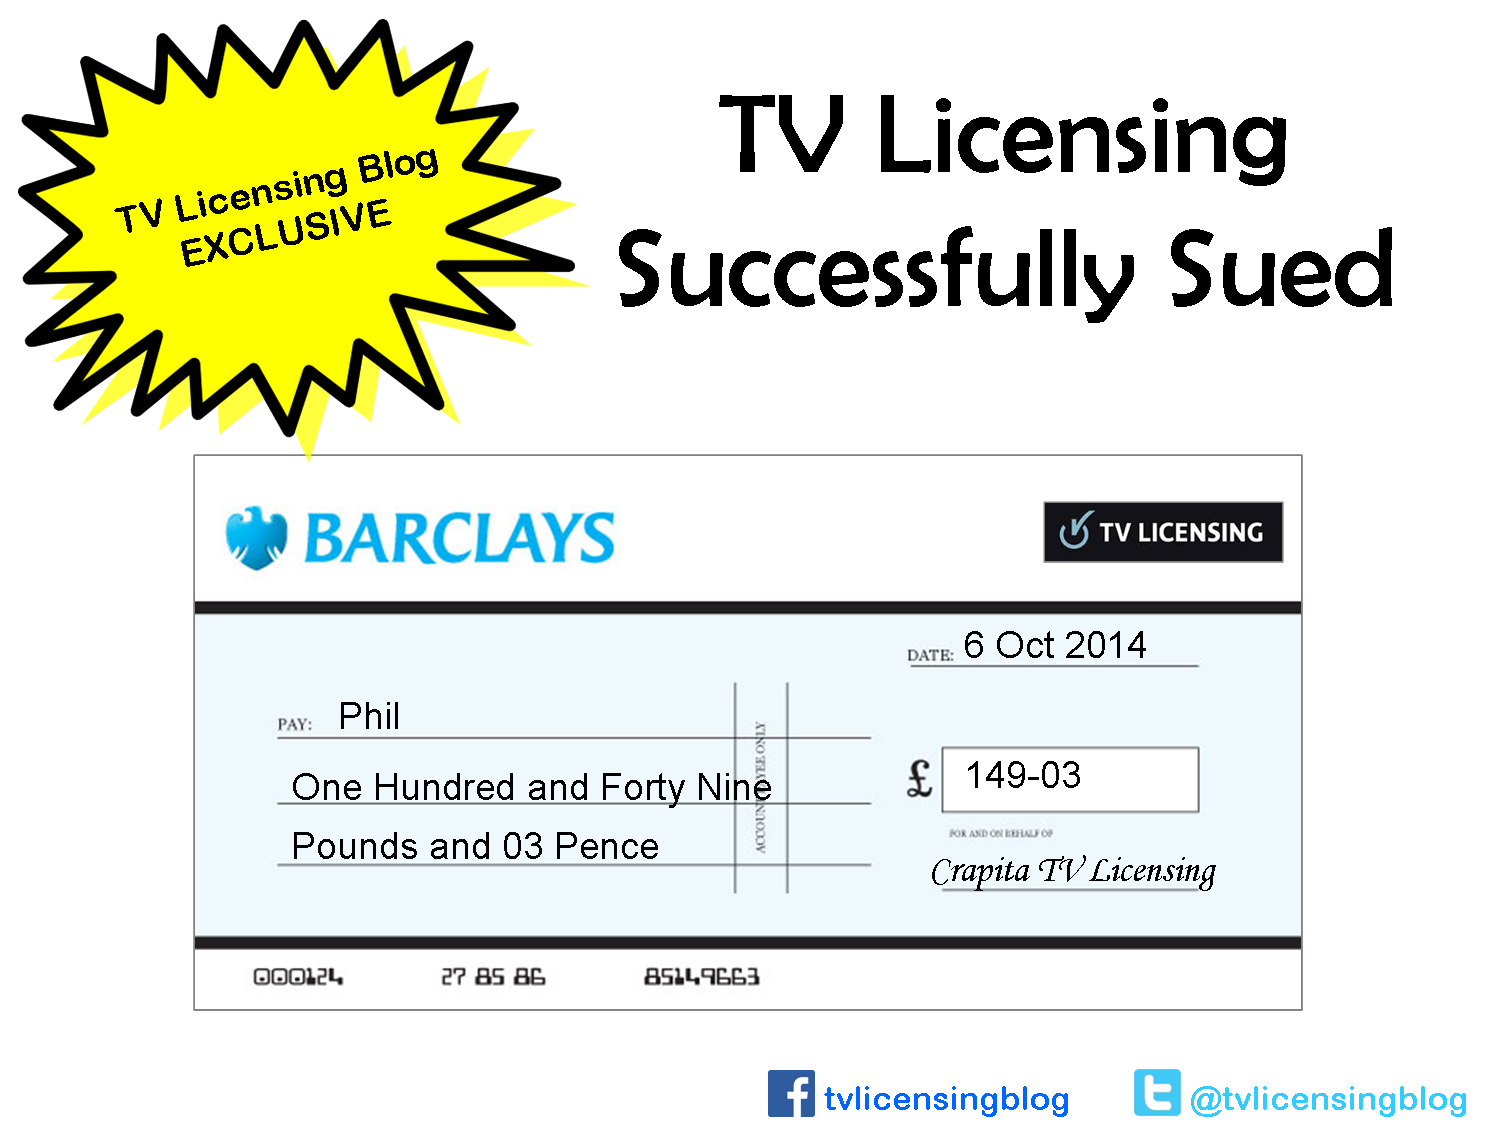 Sue TV Licensing